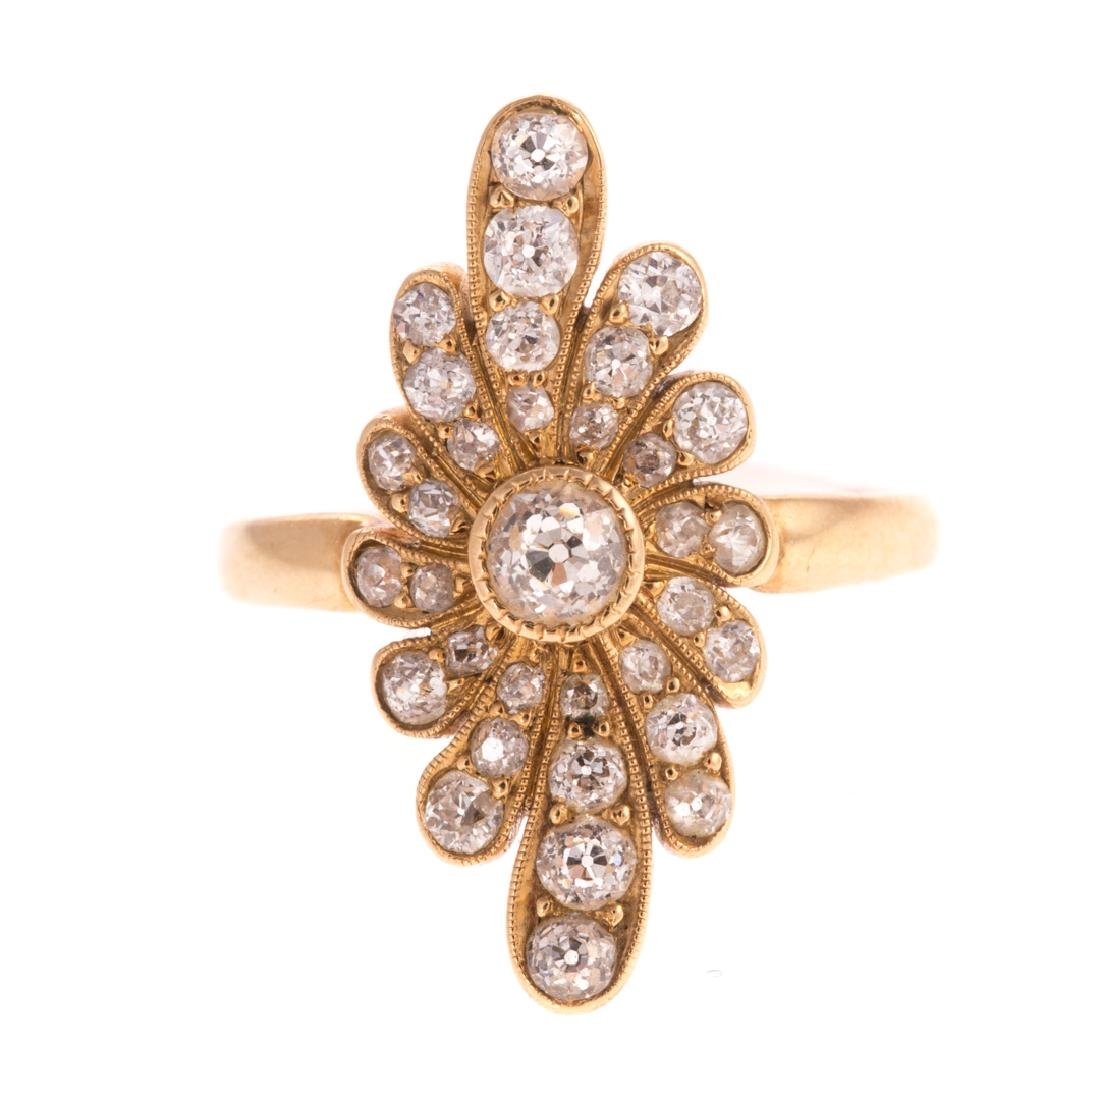 A Lady's Diamond Navette Ring in 18K Gold